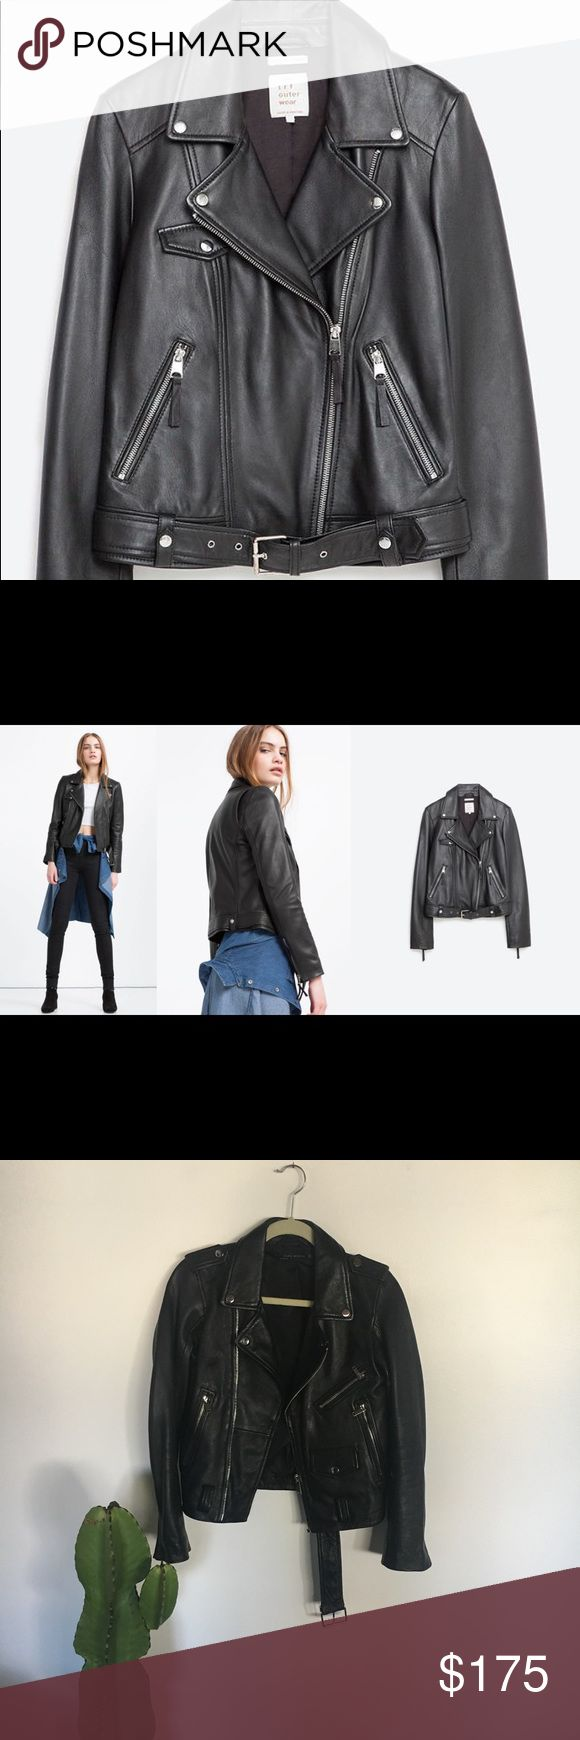 Zara Classic Lambskin Leather Moto Jacket Brand New. Zara Classic Lambskin Leather Moto Jacket- Great Condition! I'm usually a small but this runs a little snug. Perfect for fall and winter! (Belt is missing so included major discount) Zara Jackets & Coats